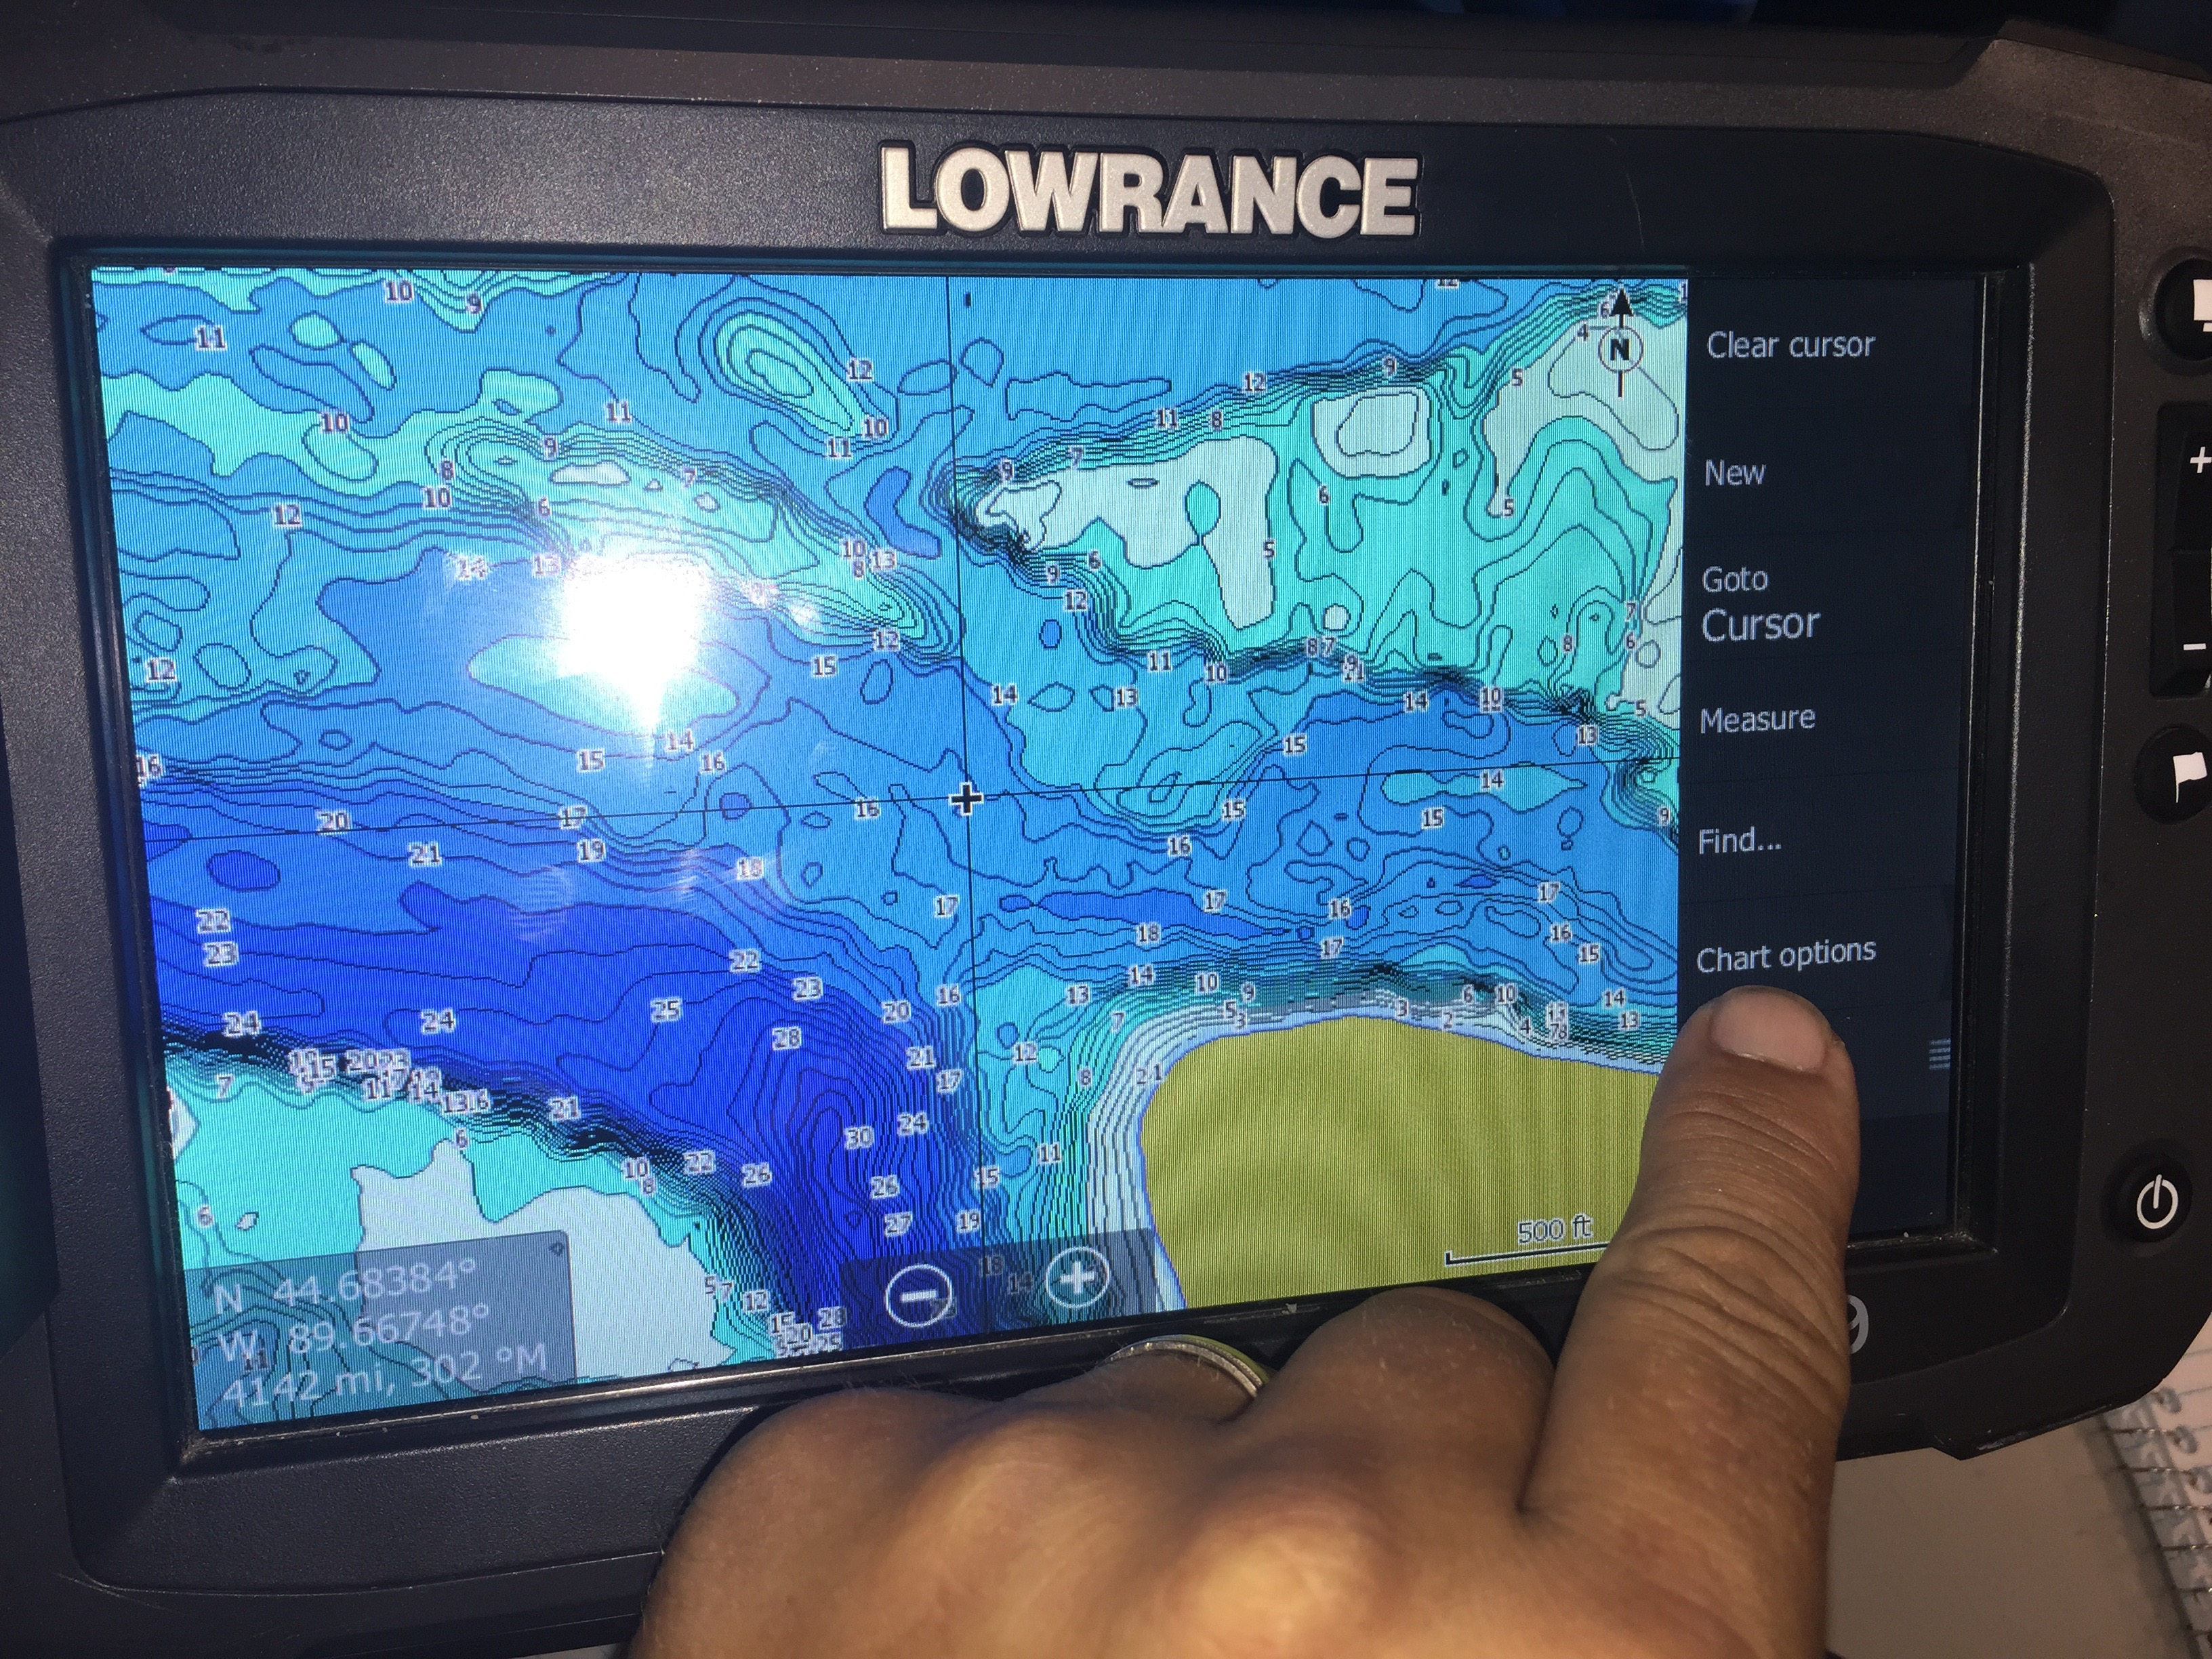 How to use multiple C-MAP Genesis maps on your sonar/GPS